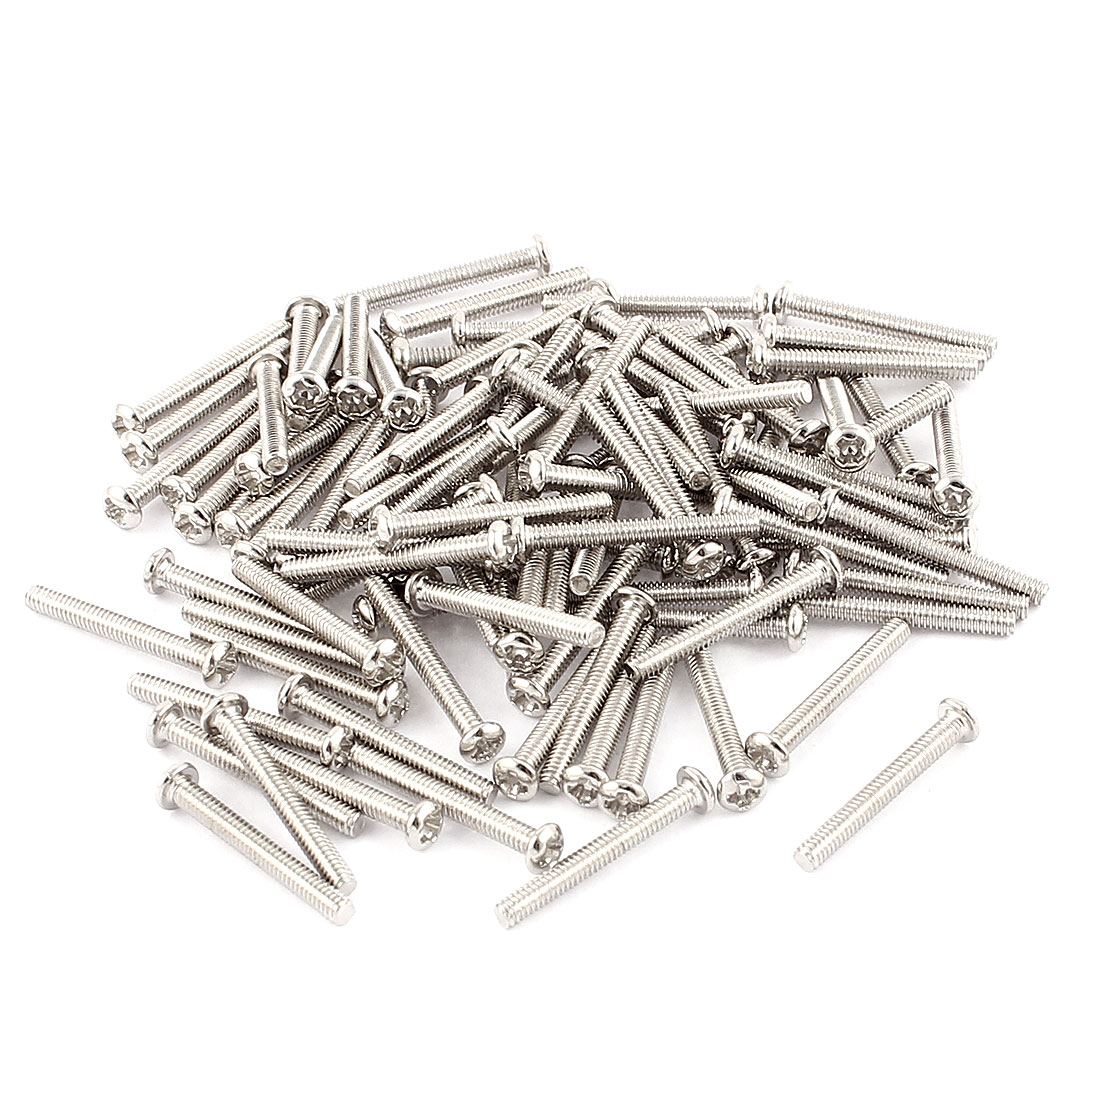 100 Pcs M2x16mm Stainless Steel Round Head Phillips Machine Screws Bolts